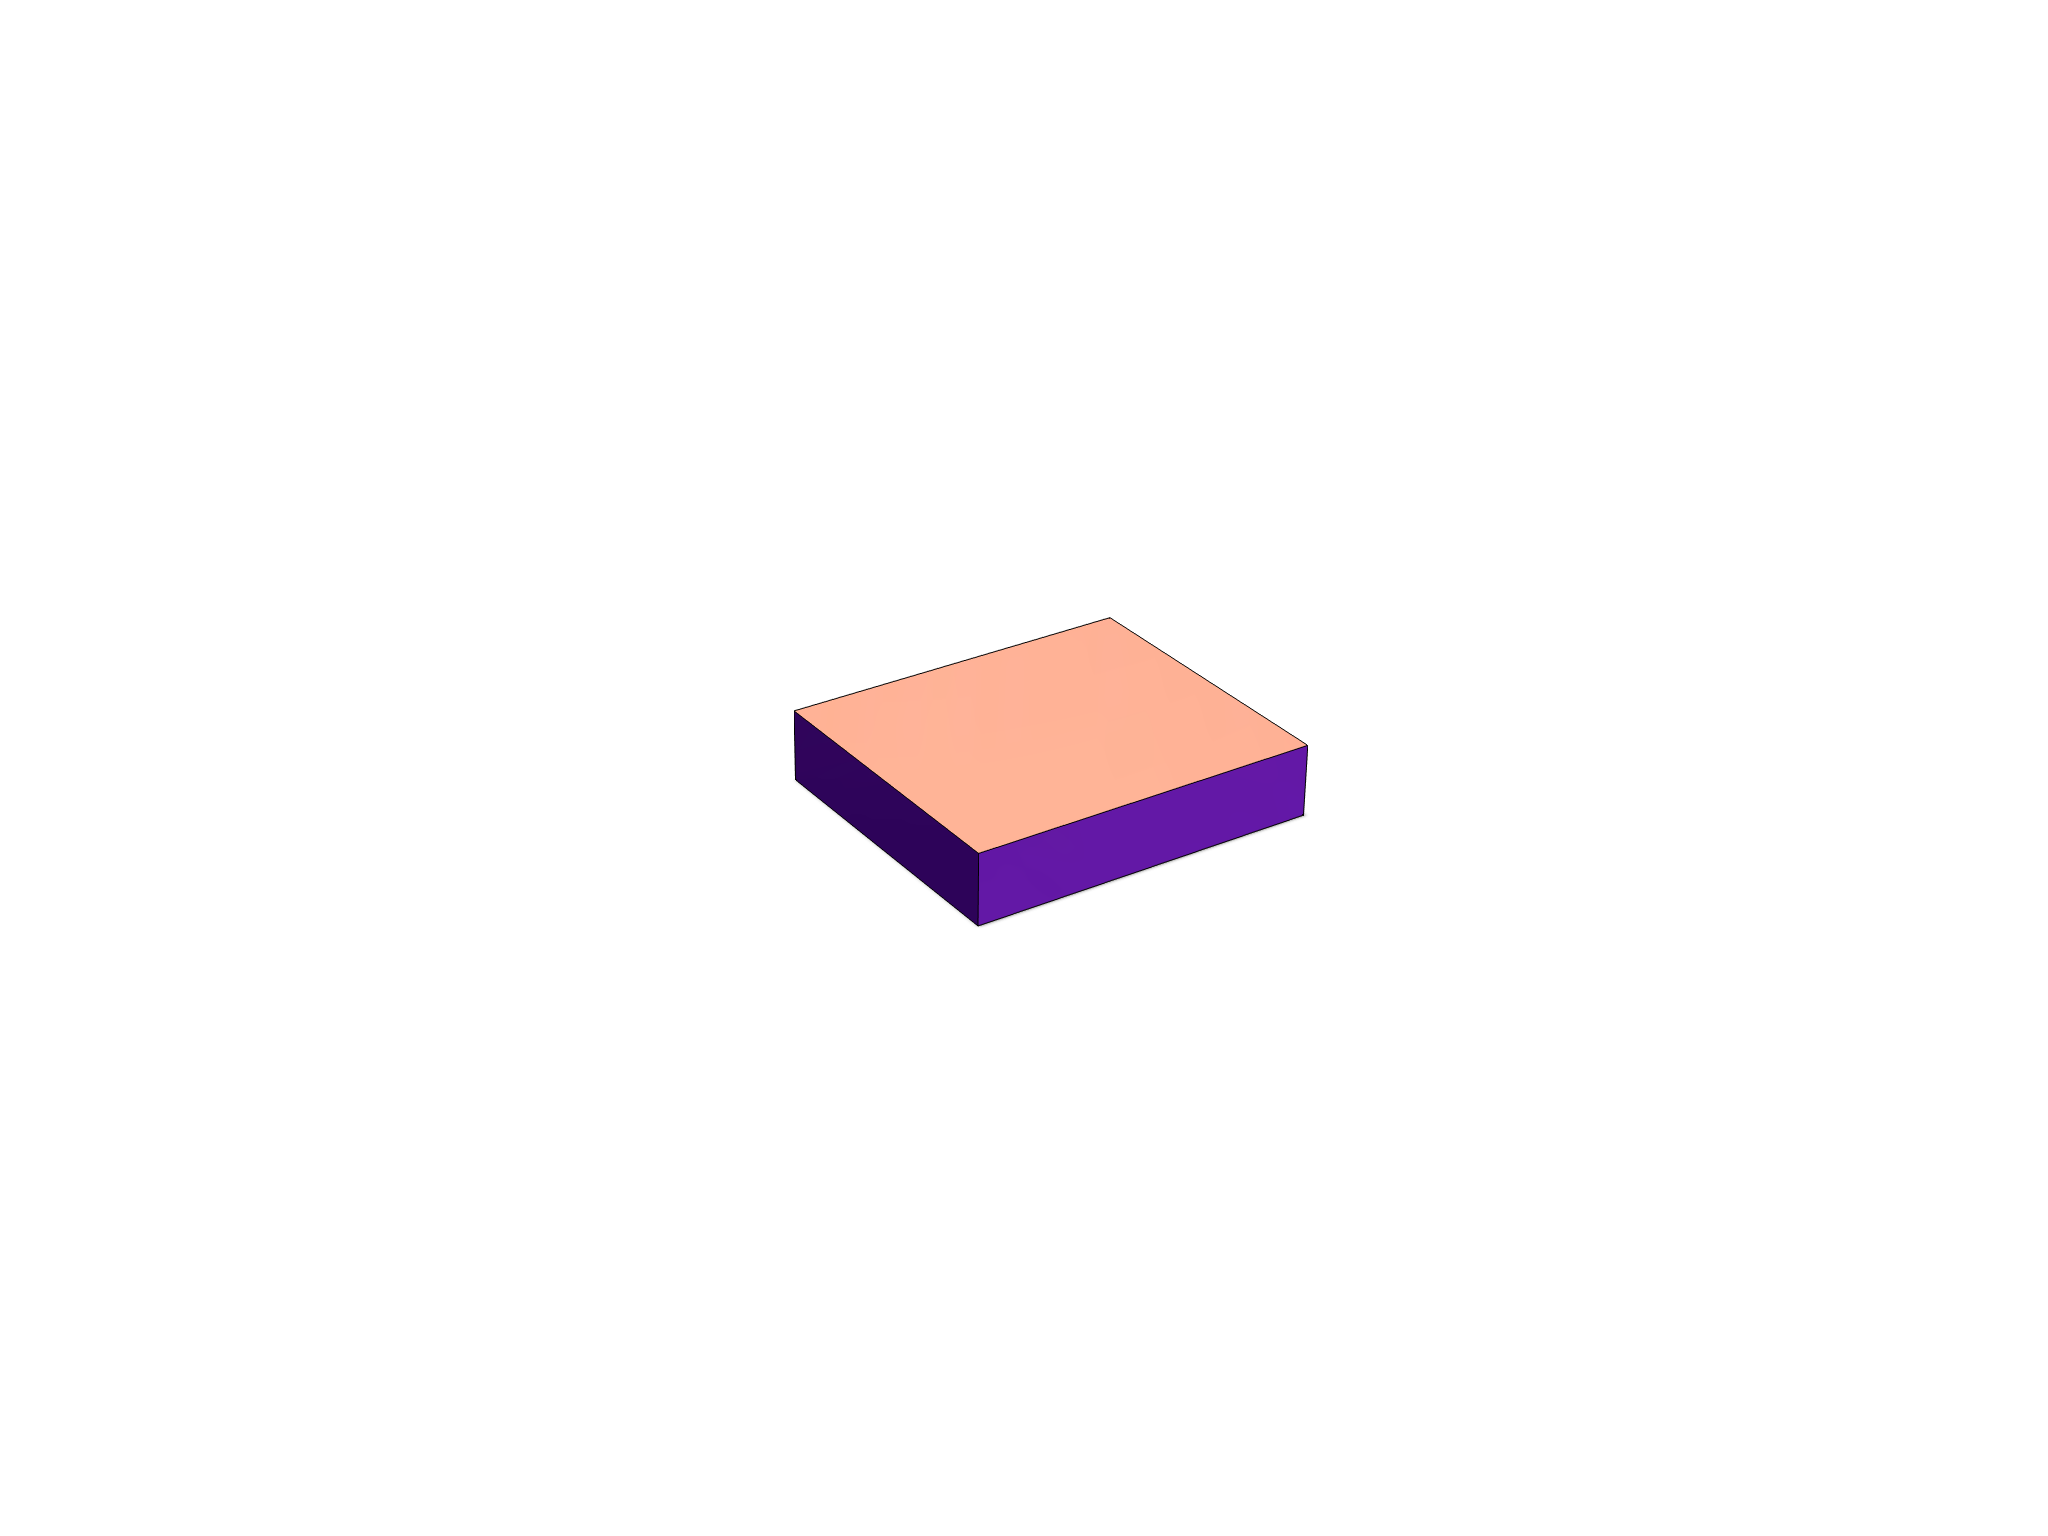 Exciting Box - 3D design by Luke Cottingham Feb 16, 2018